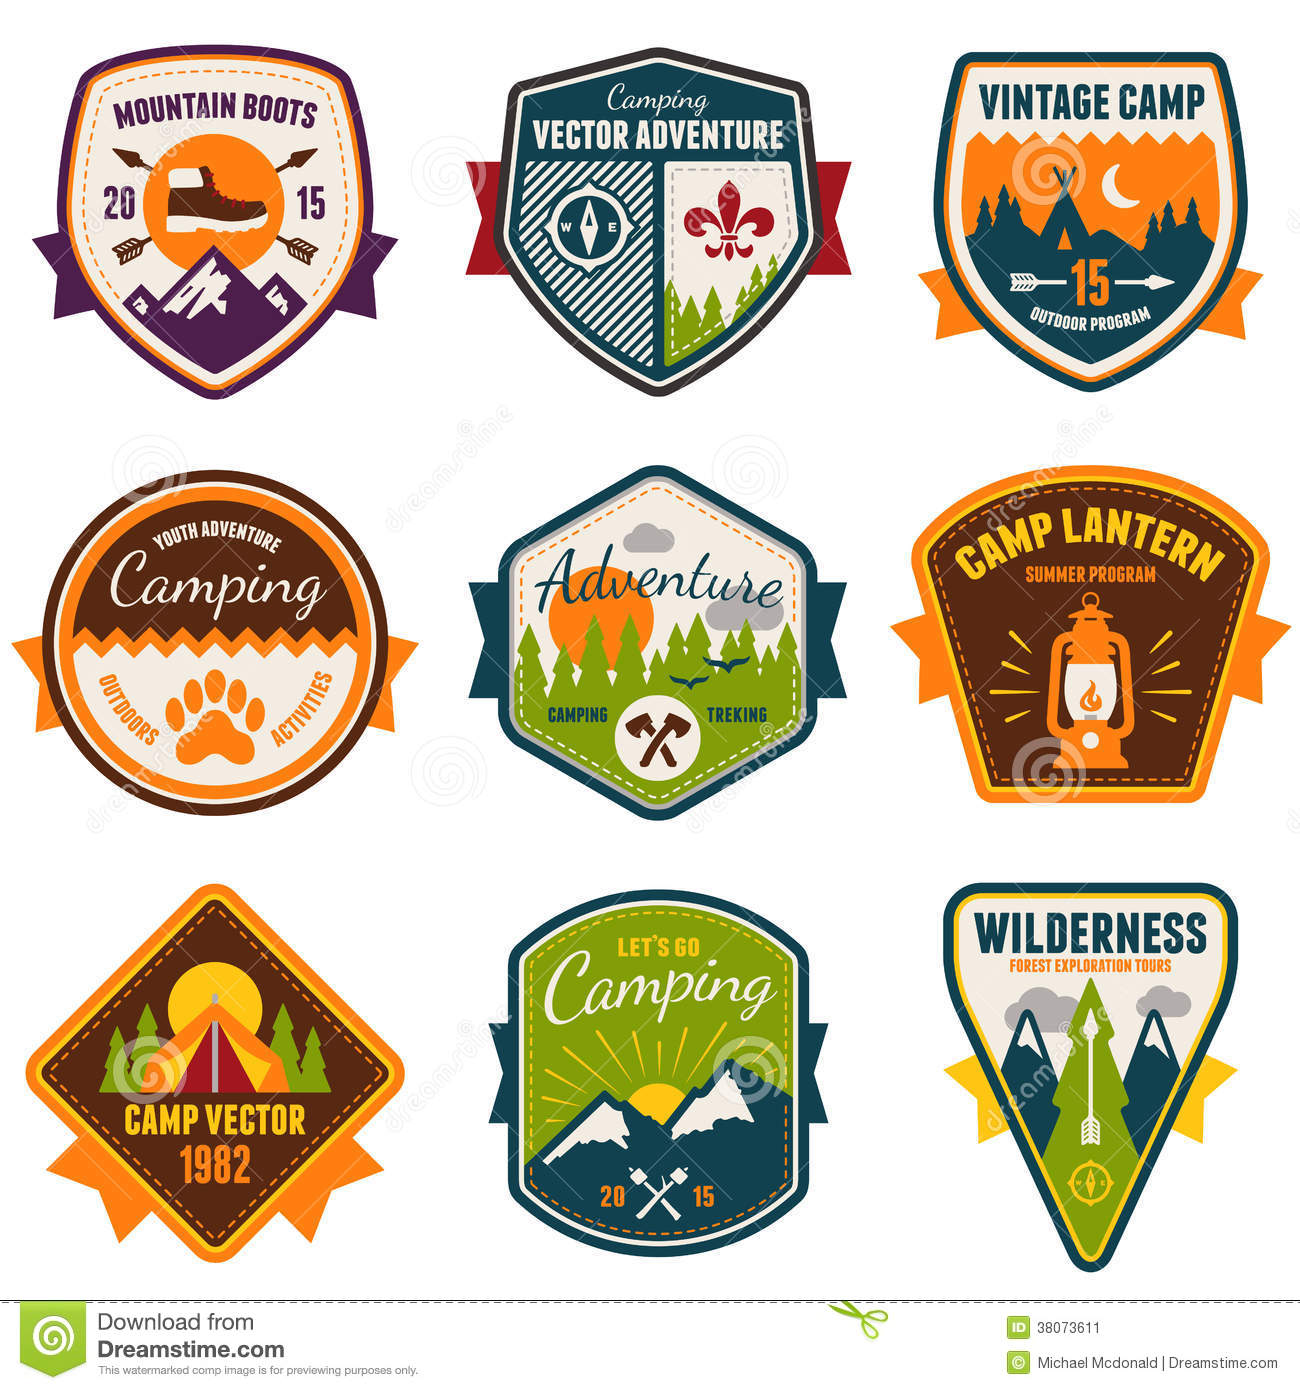 hight resolution of camp lantern stock illustrations 1 946 camp lantern stock illustrations vectors clipart dreamstime